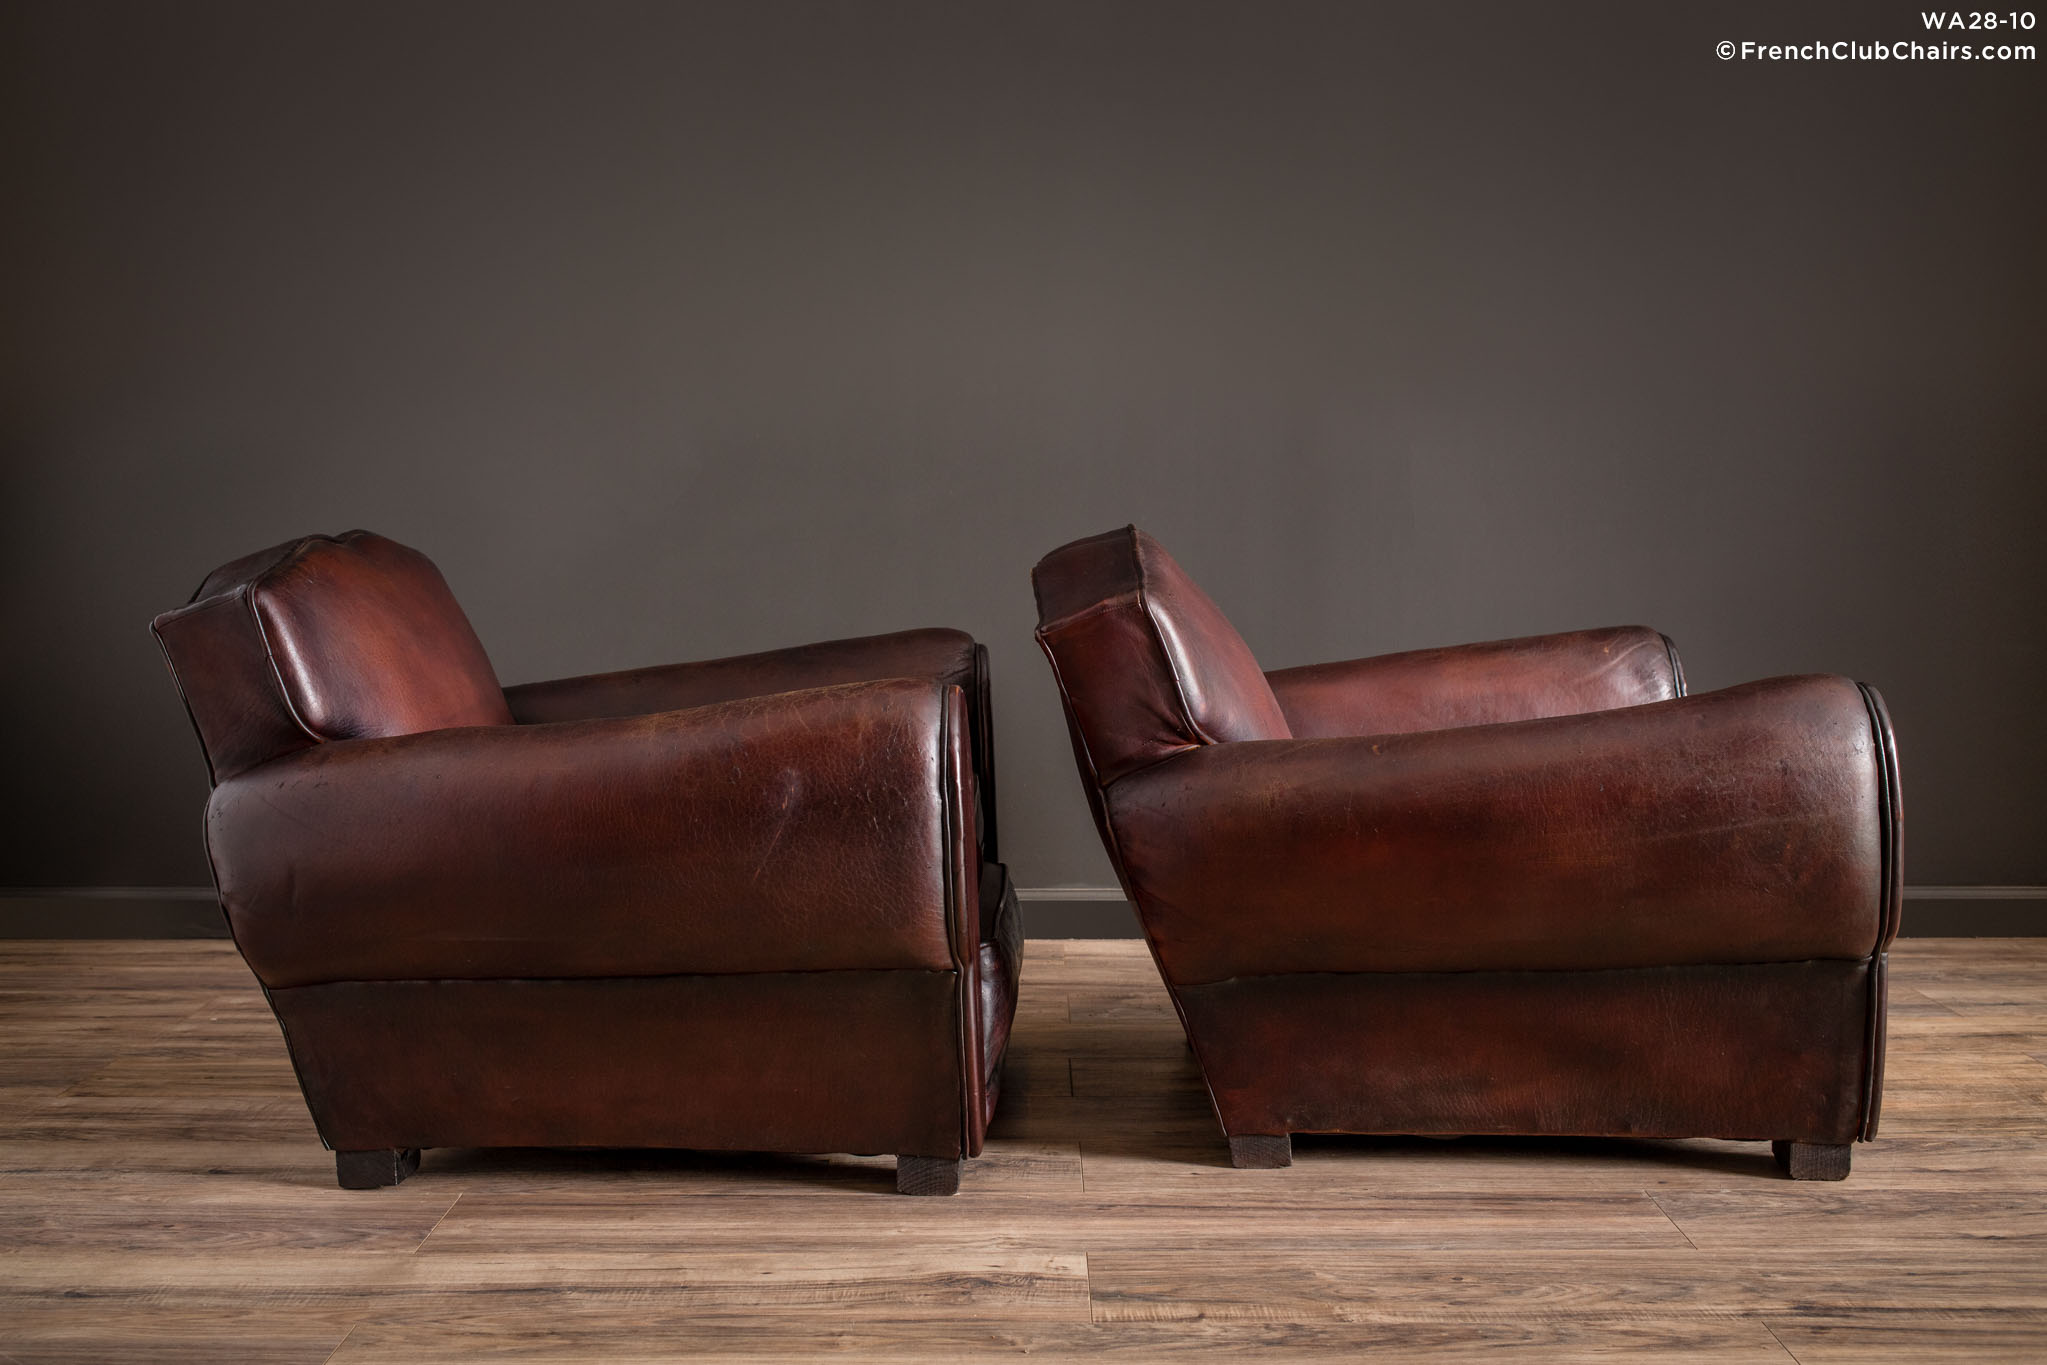 WA_28-10_La_Bastille_Mustache_Pair-restored_R_3RT1-williams-antiks-leather-french-club-chair-wa_fcccom